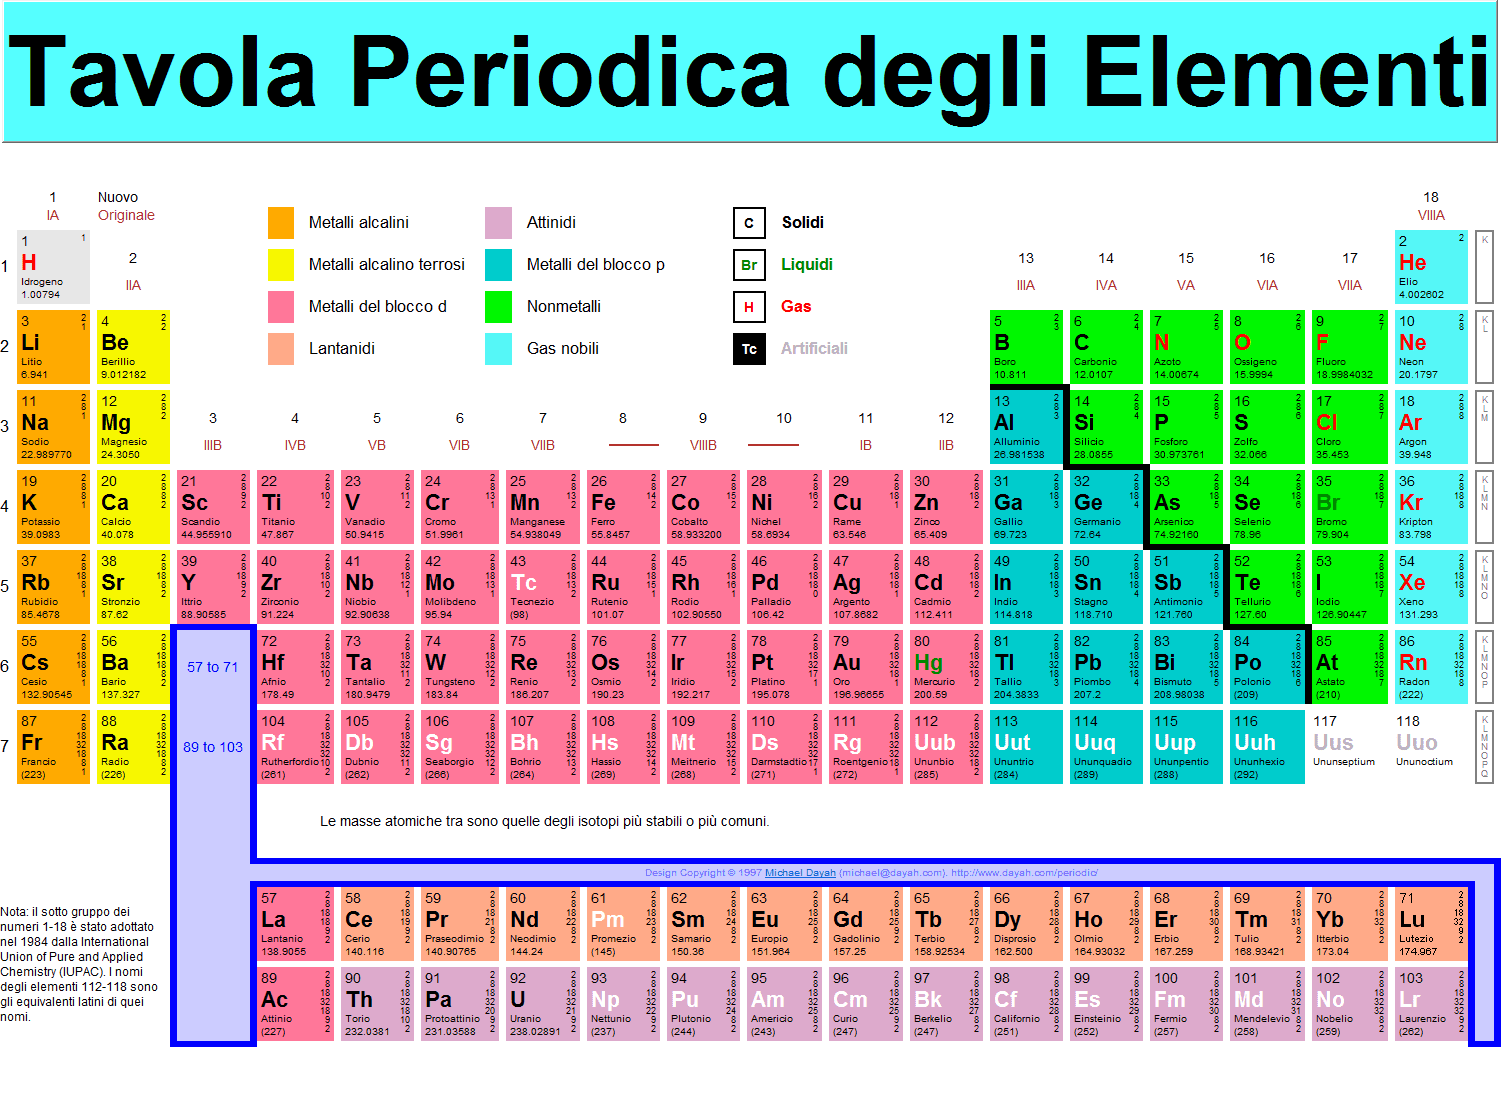 The chemistry of elements tavola periodica degli elementi - Tavola periodica degli elementi ...